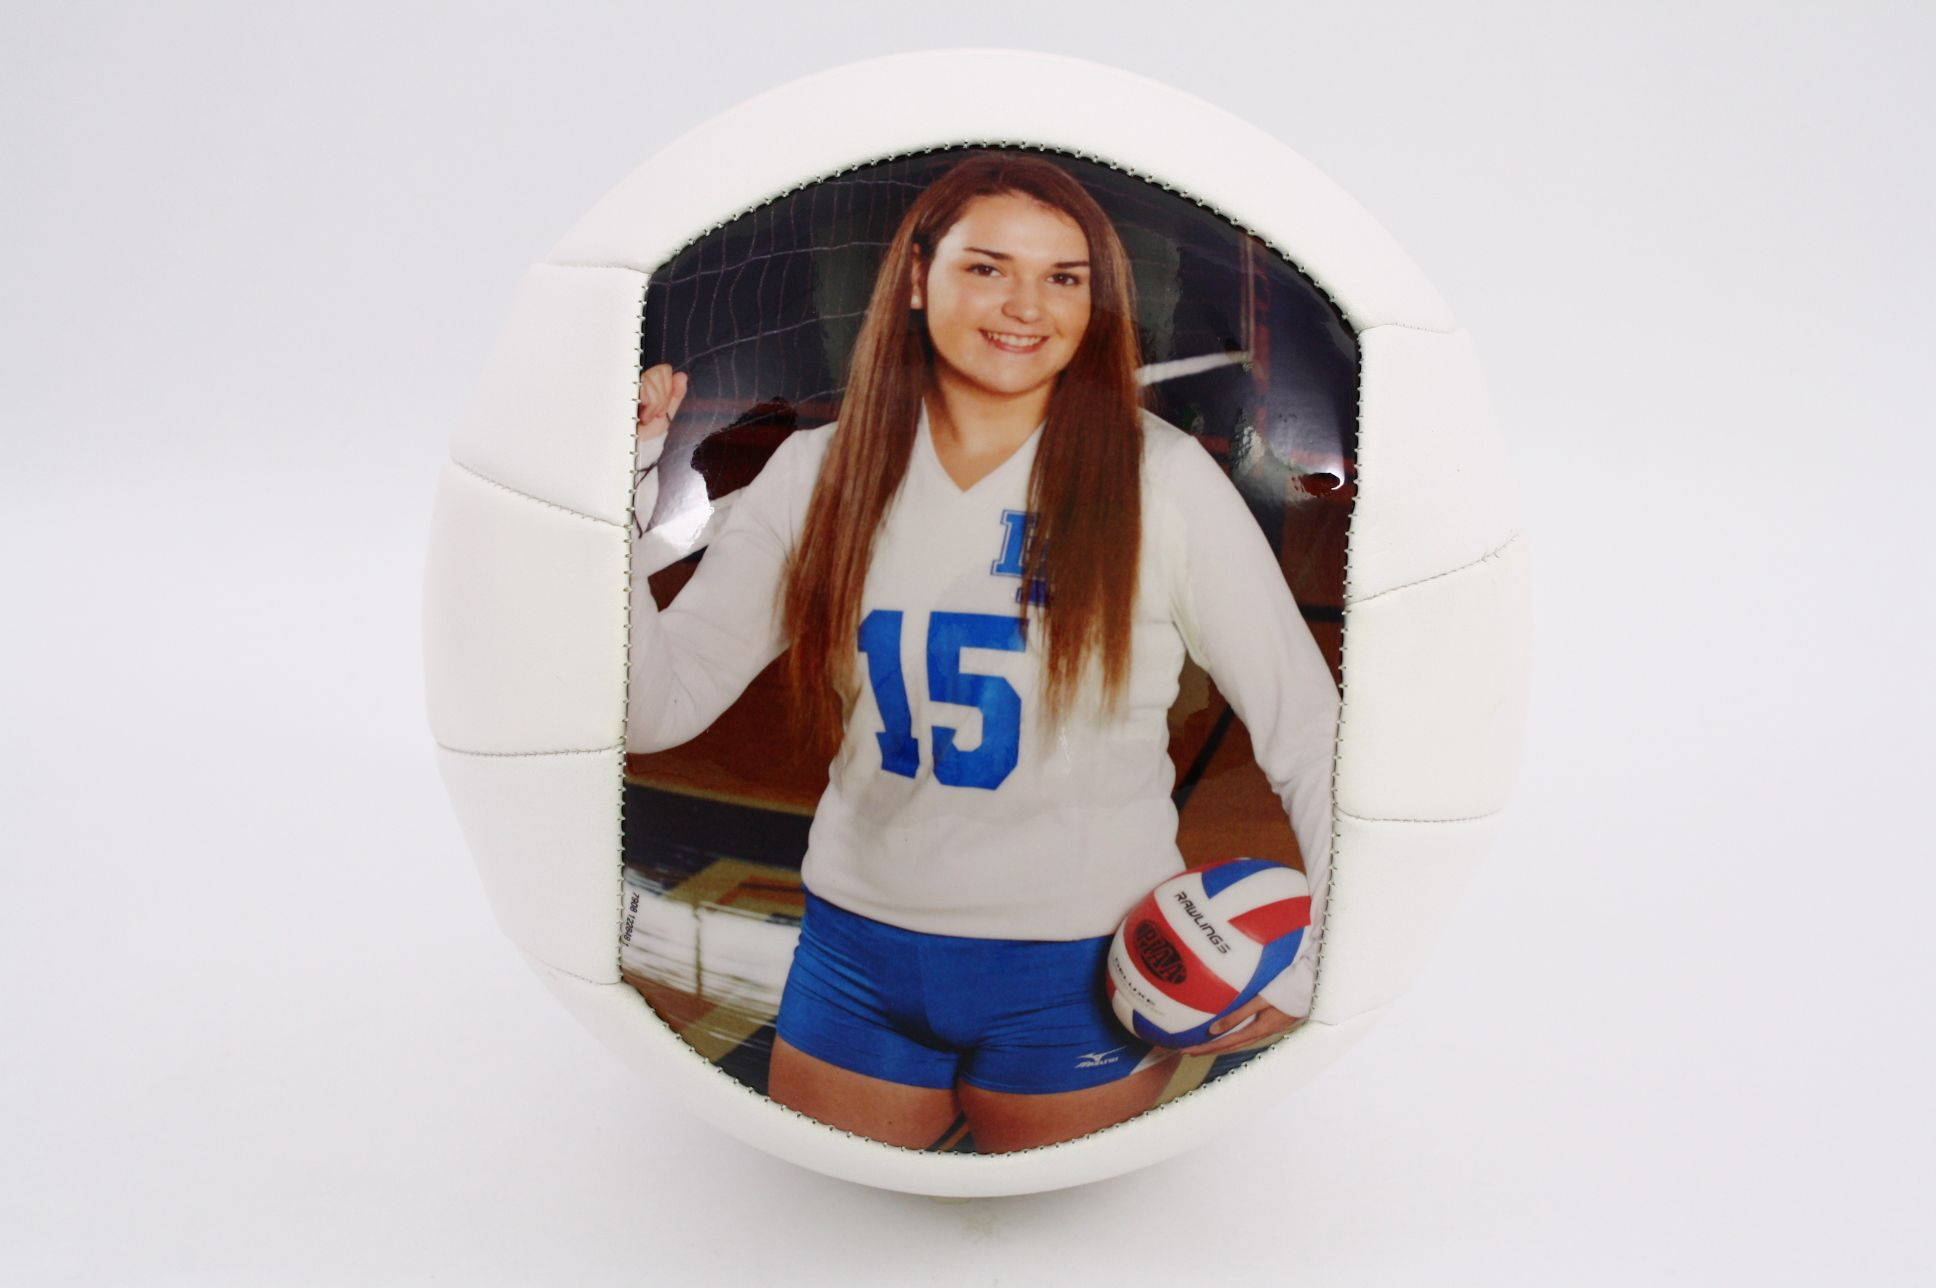 Customized Volleyball 1 Or 2 Panels Use Any Pictures And Text You Can Even Use Your Own Design Get Creative Volleyball Gifts Sports Balls Volleyball Crafts